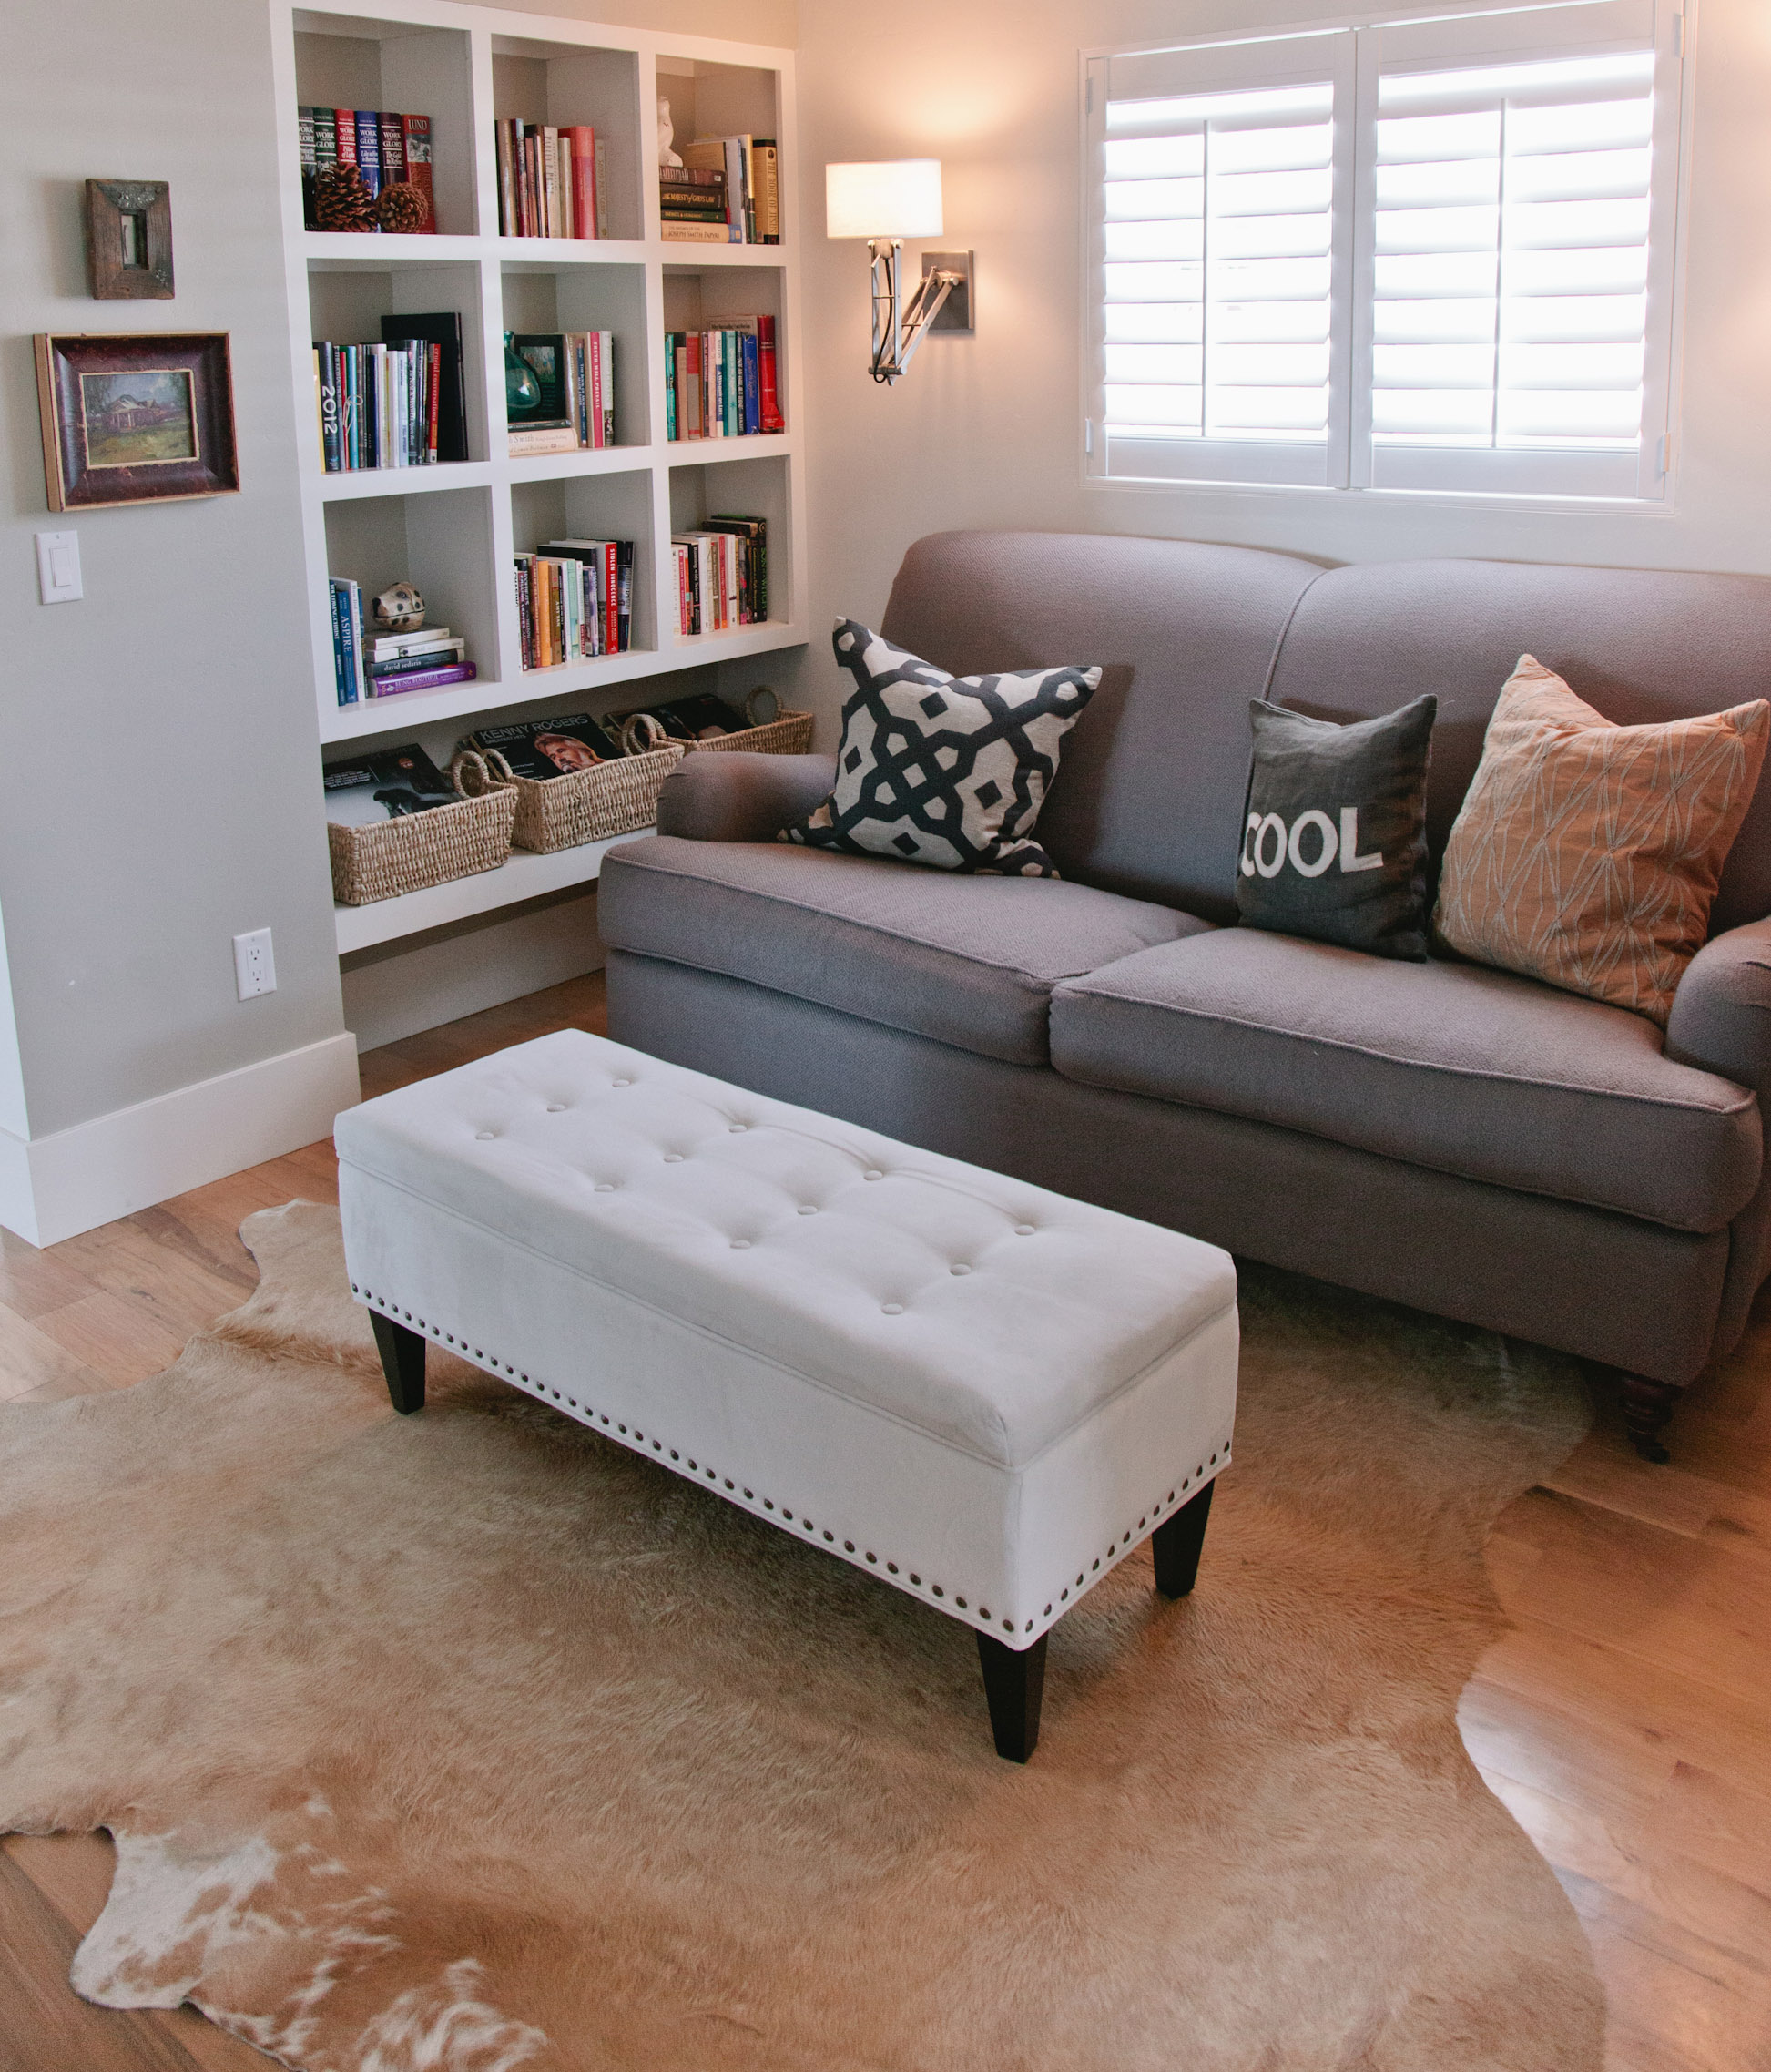 Built-in bookshelves surround a comfortable sofa and storage ottoman. The cowhide rug adds an eclectic touch.